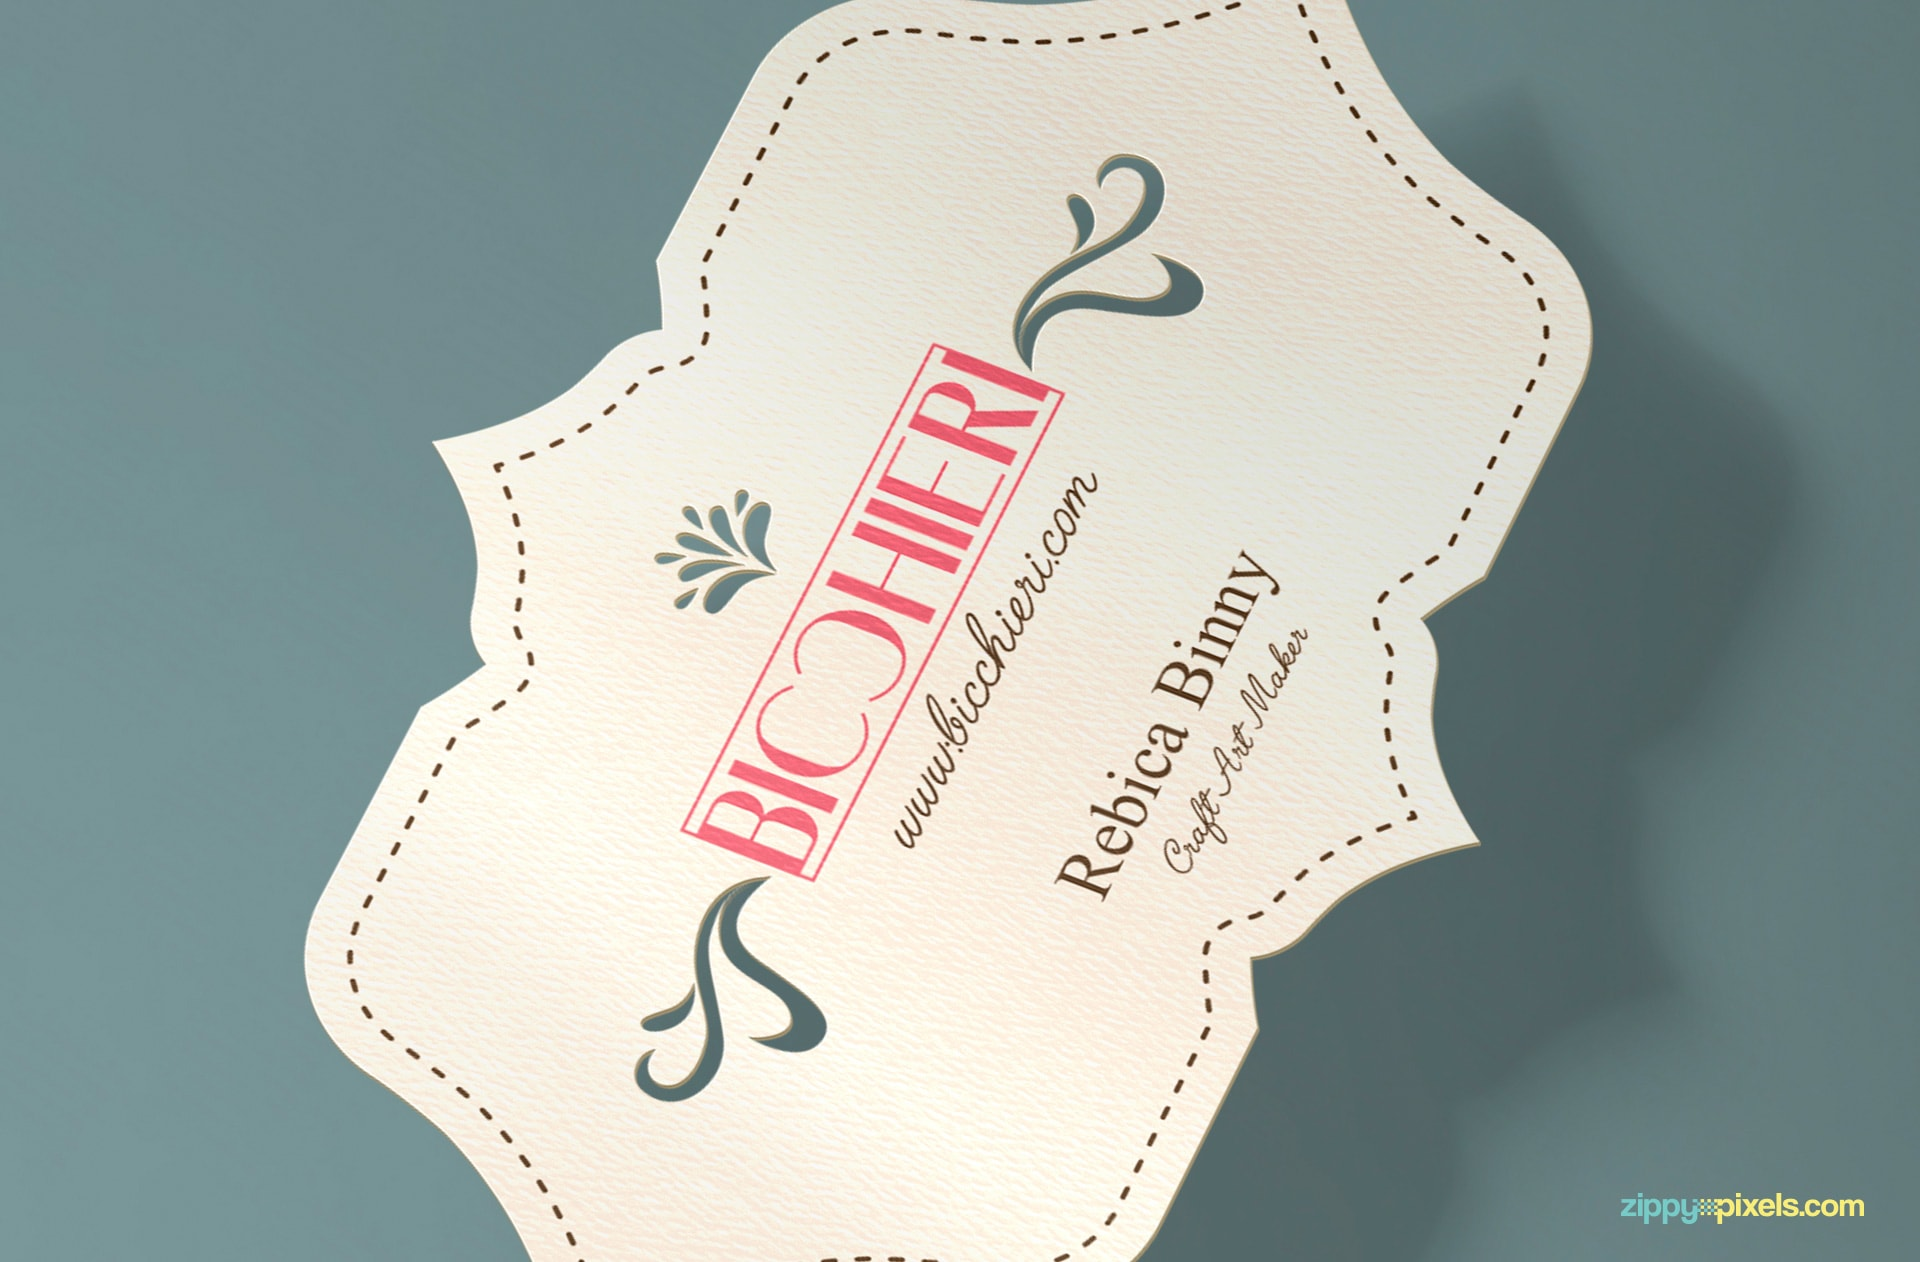 present your die cut business card designs with ease